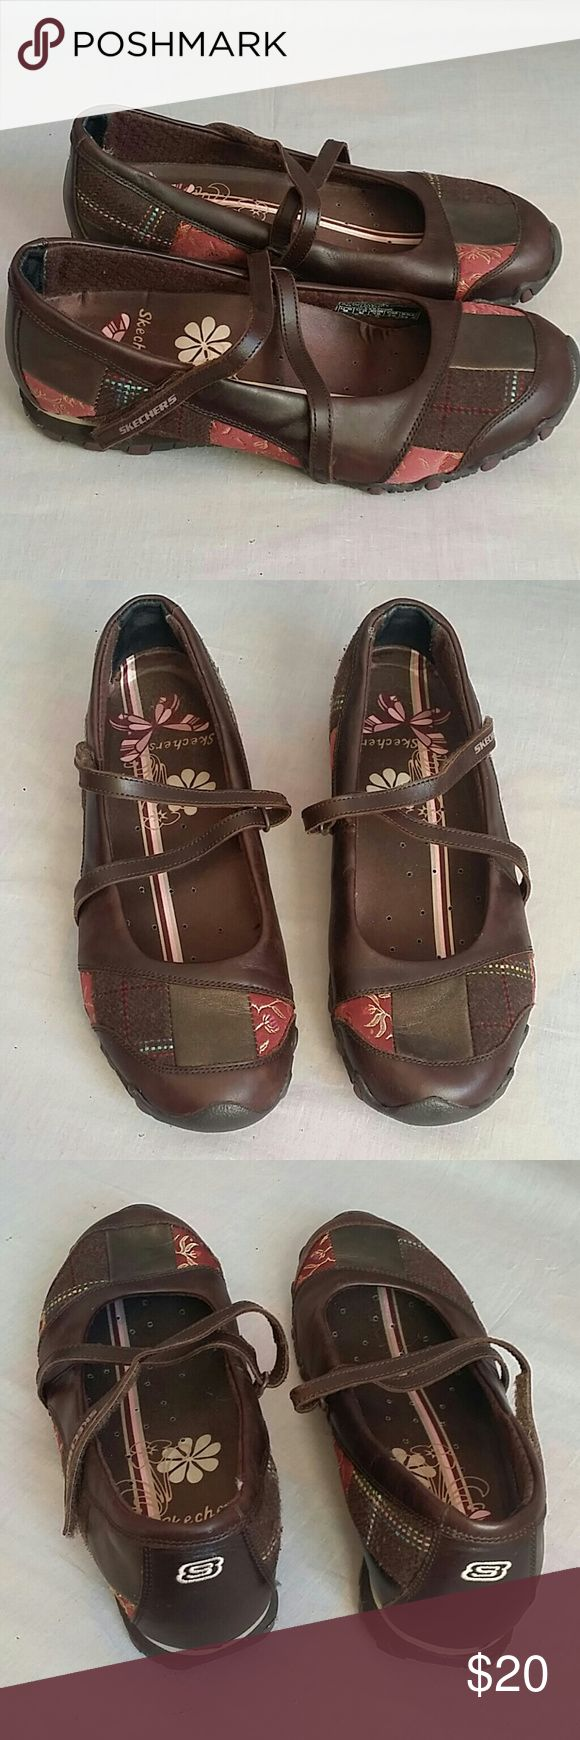 Skechers Shoes Multi-color 9 M Leather Item is in a good condition, NO PETS AND SMOKE FREE HOME. Skechers Shoes